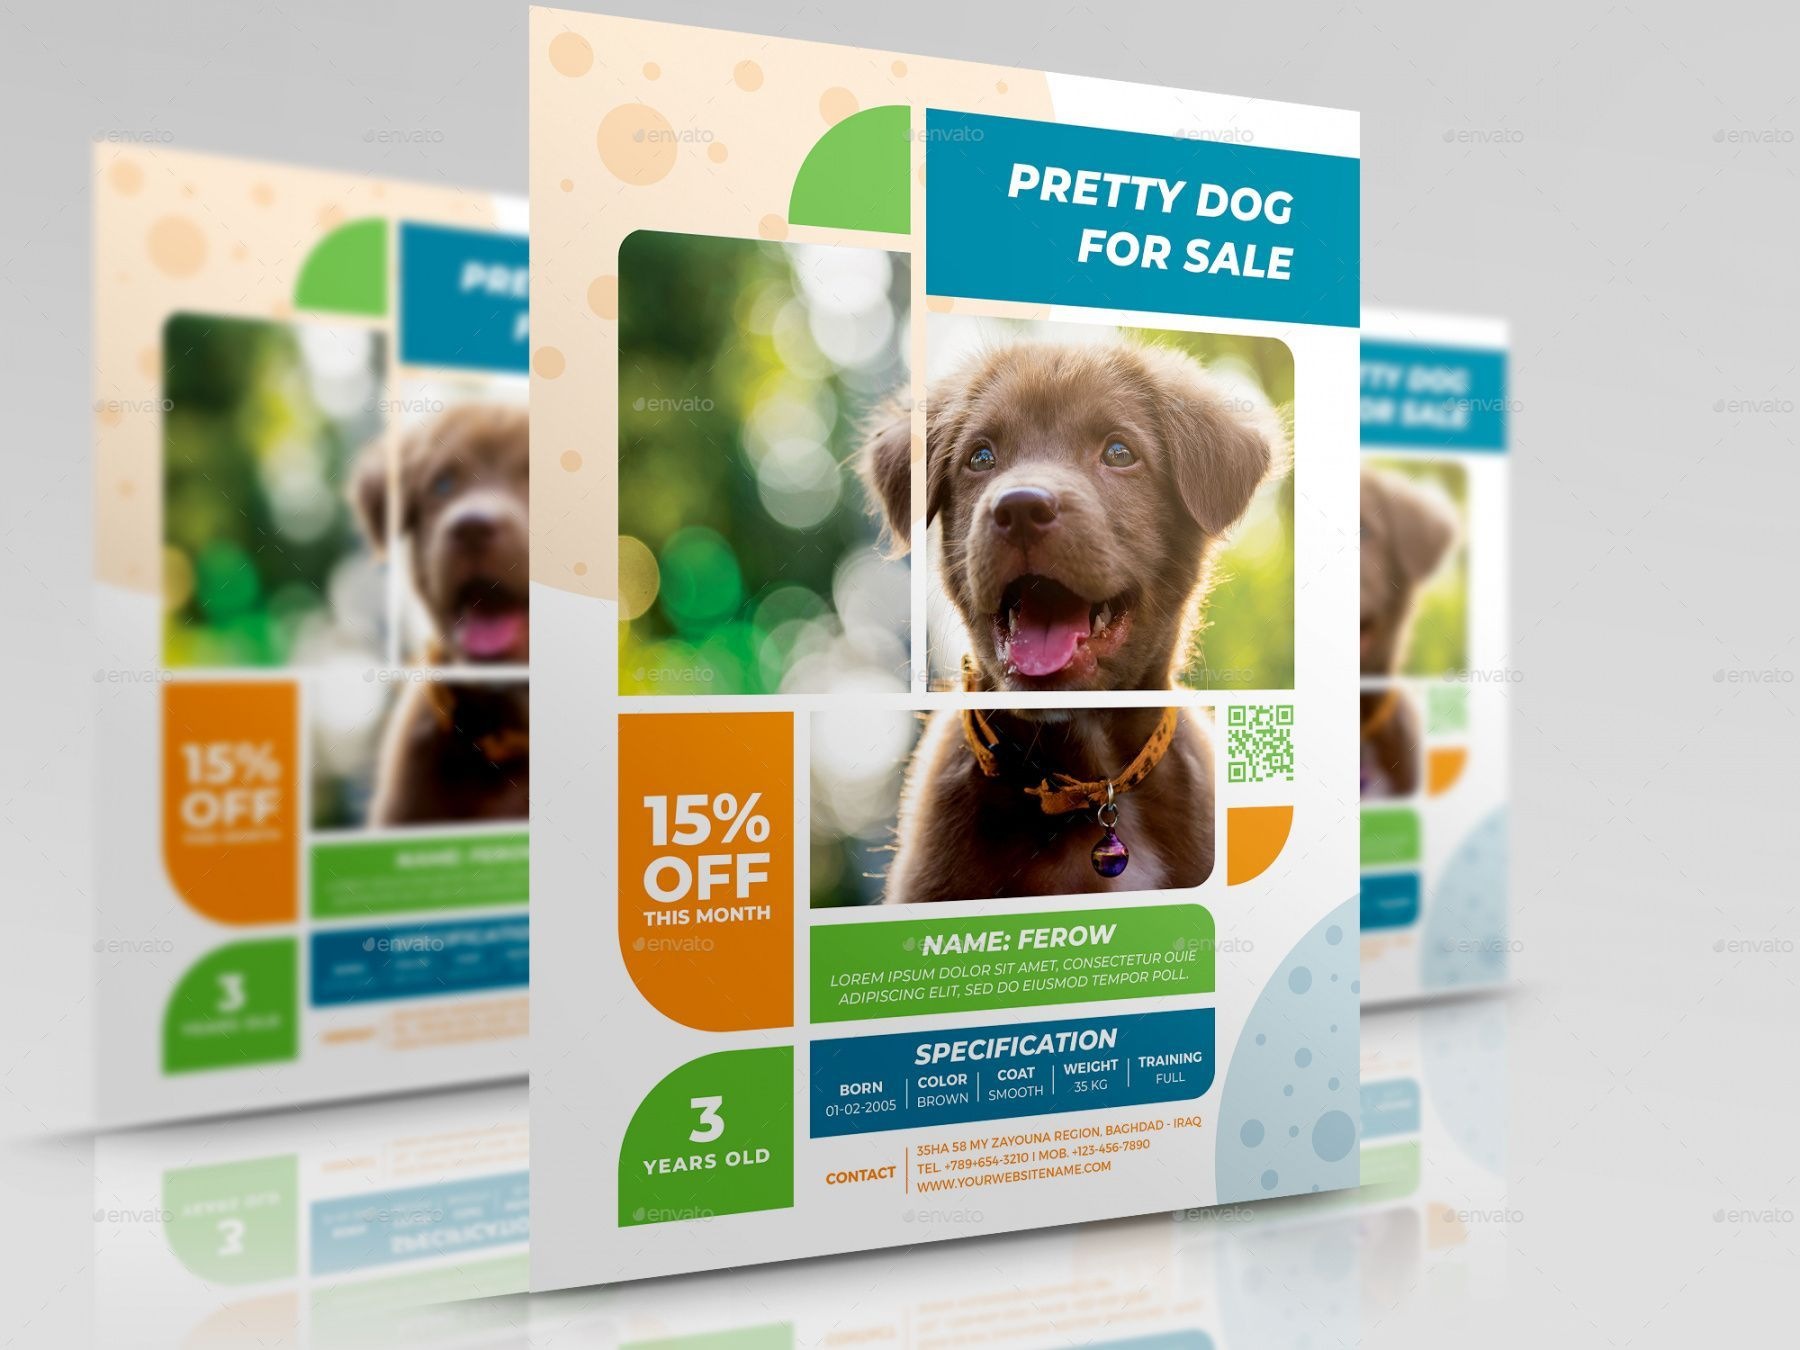 Get Our Image Of Puppies For Sale Flyer Template Pets For Sale Puppies For Sale Flyer Template Puppies for sale flyer template